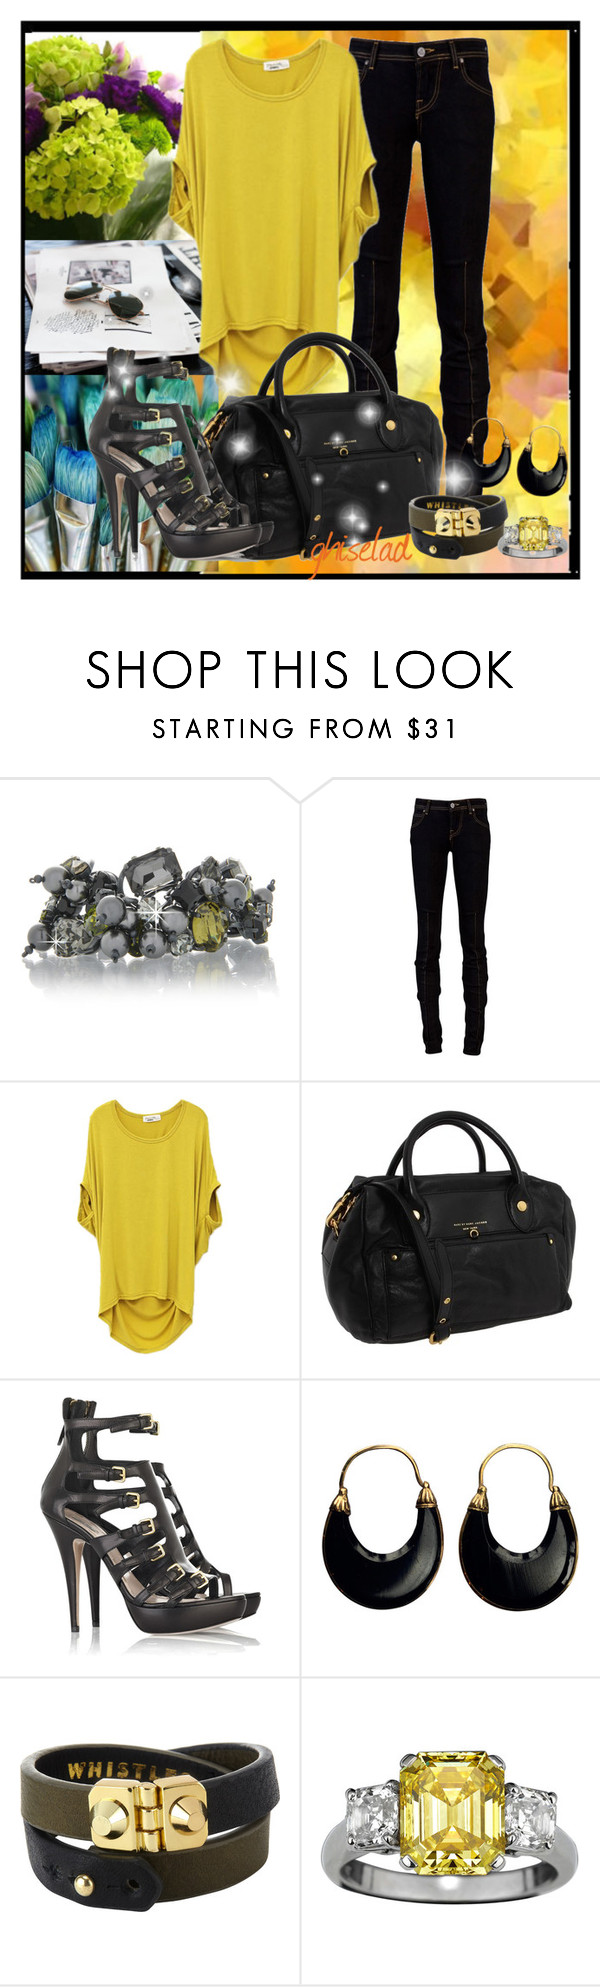 """Simple Yellow!!!!!!"" by ghiselad ❤ liked on Polyvore featuring LK Designs, Vivienne Westwood Anglomania, Marc by Marc Jacobs, Miu Miu, black bag, marc jacobs, mini dress, lk desing, platform and tunic"